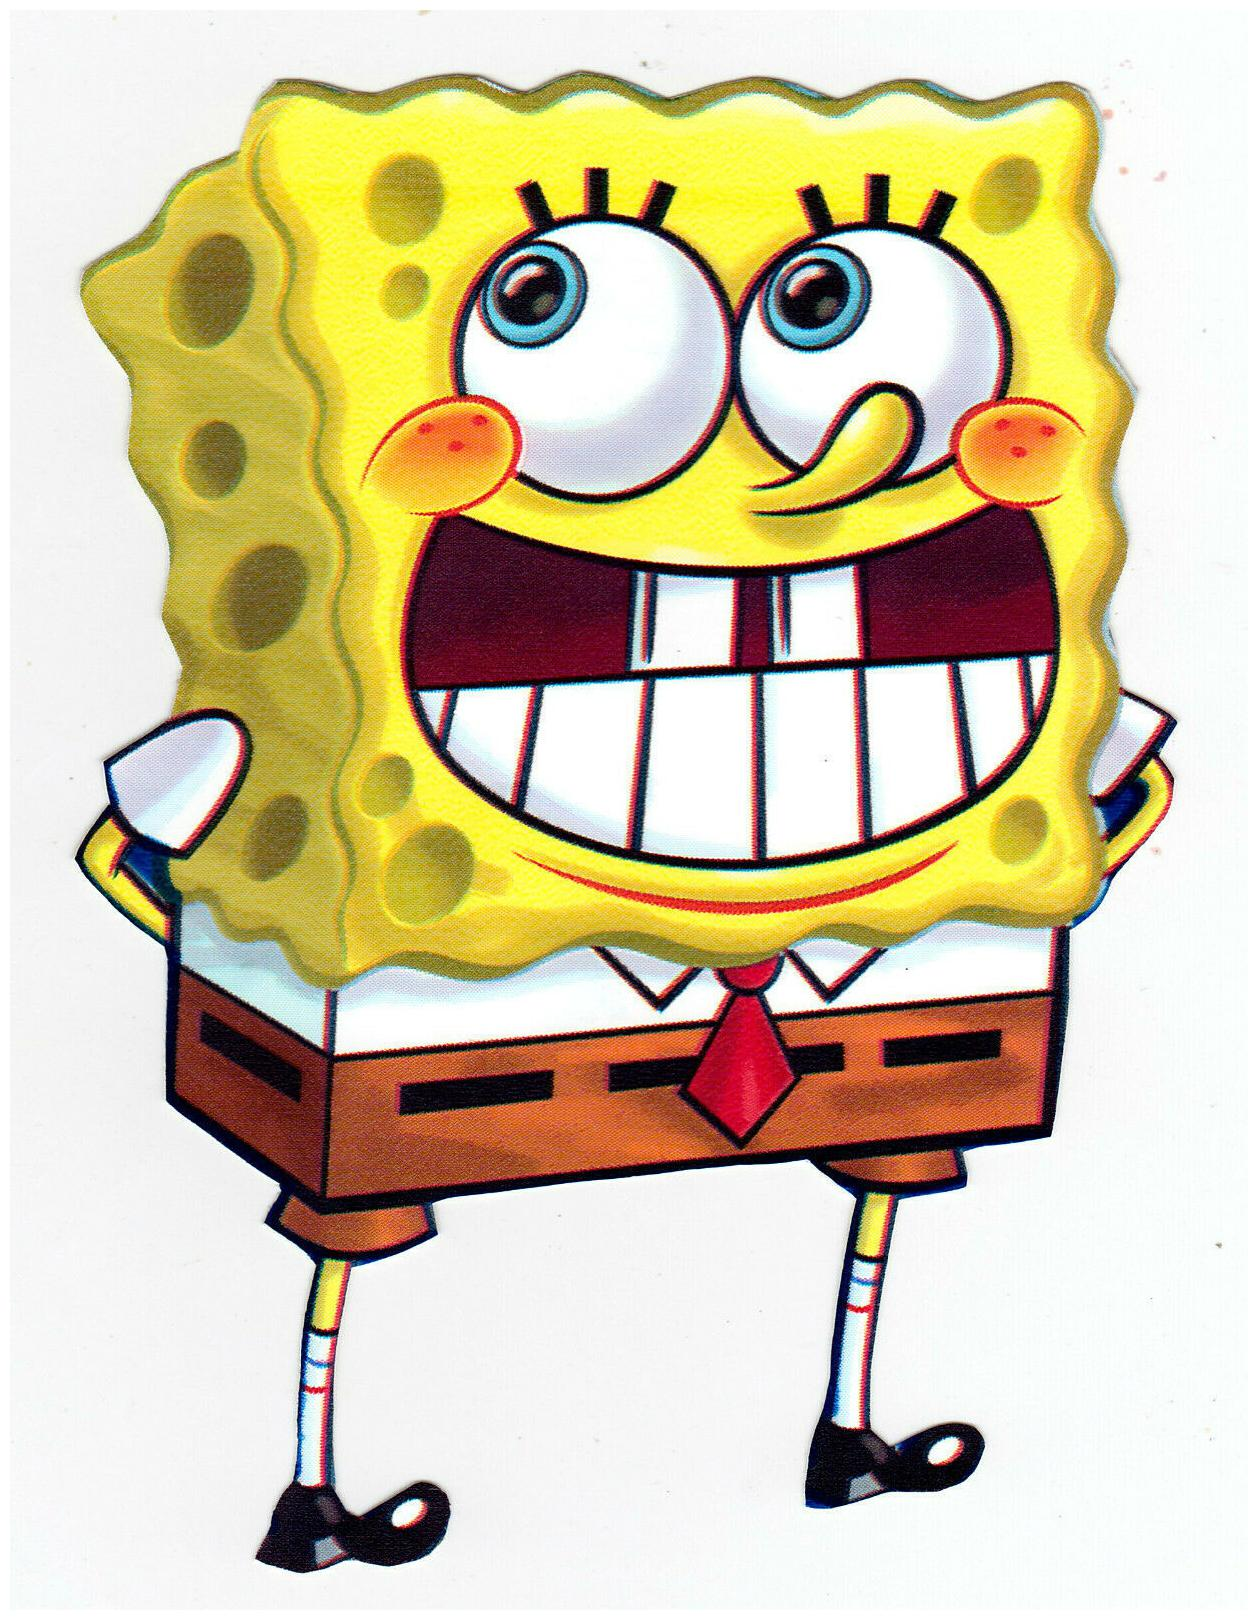 SpongeBob PNG Picture   Gallery Yopriceville - High-Quality Images and  Transparent PNG Free Clipart